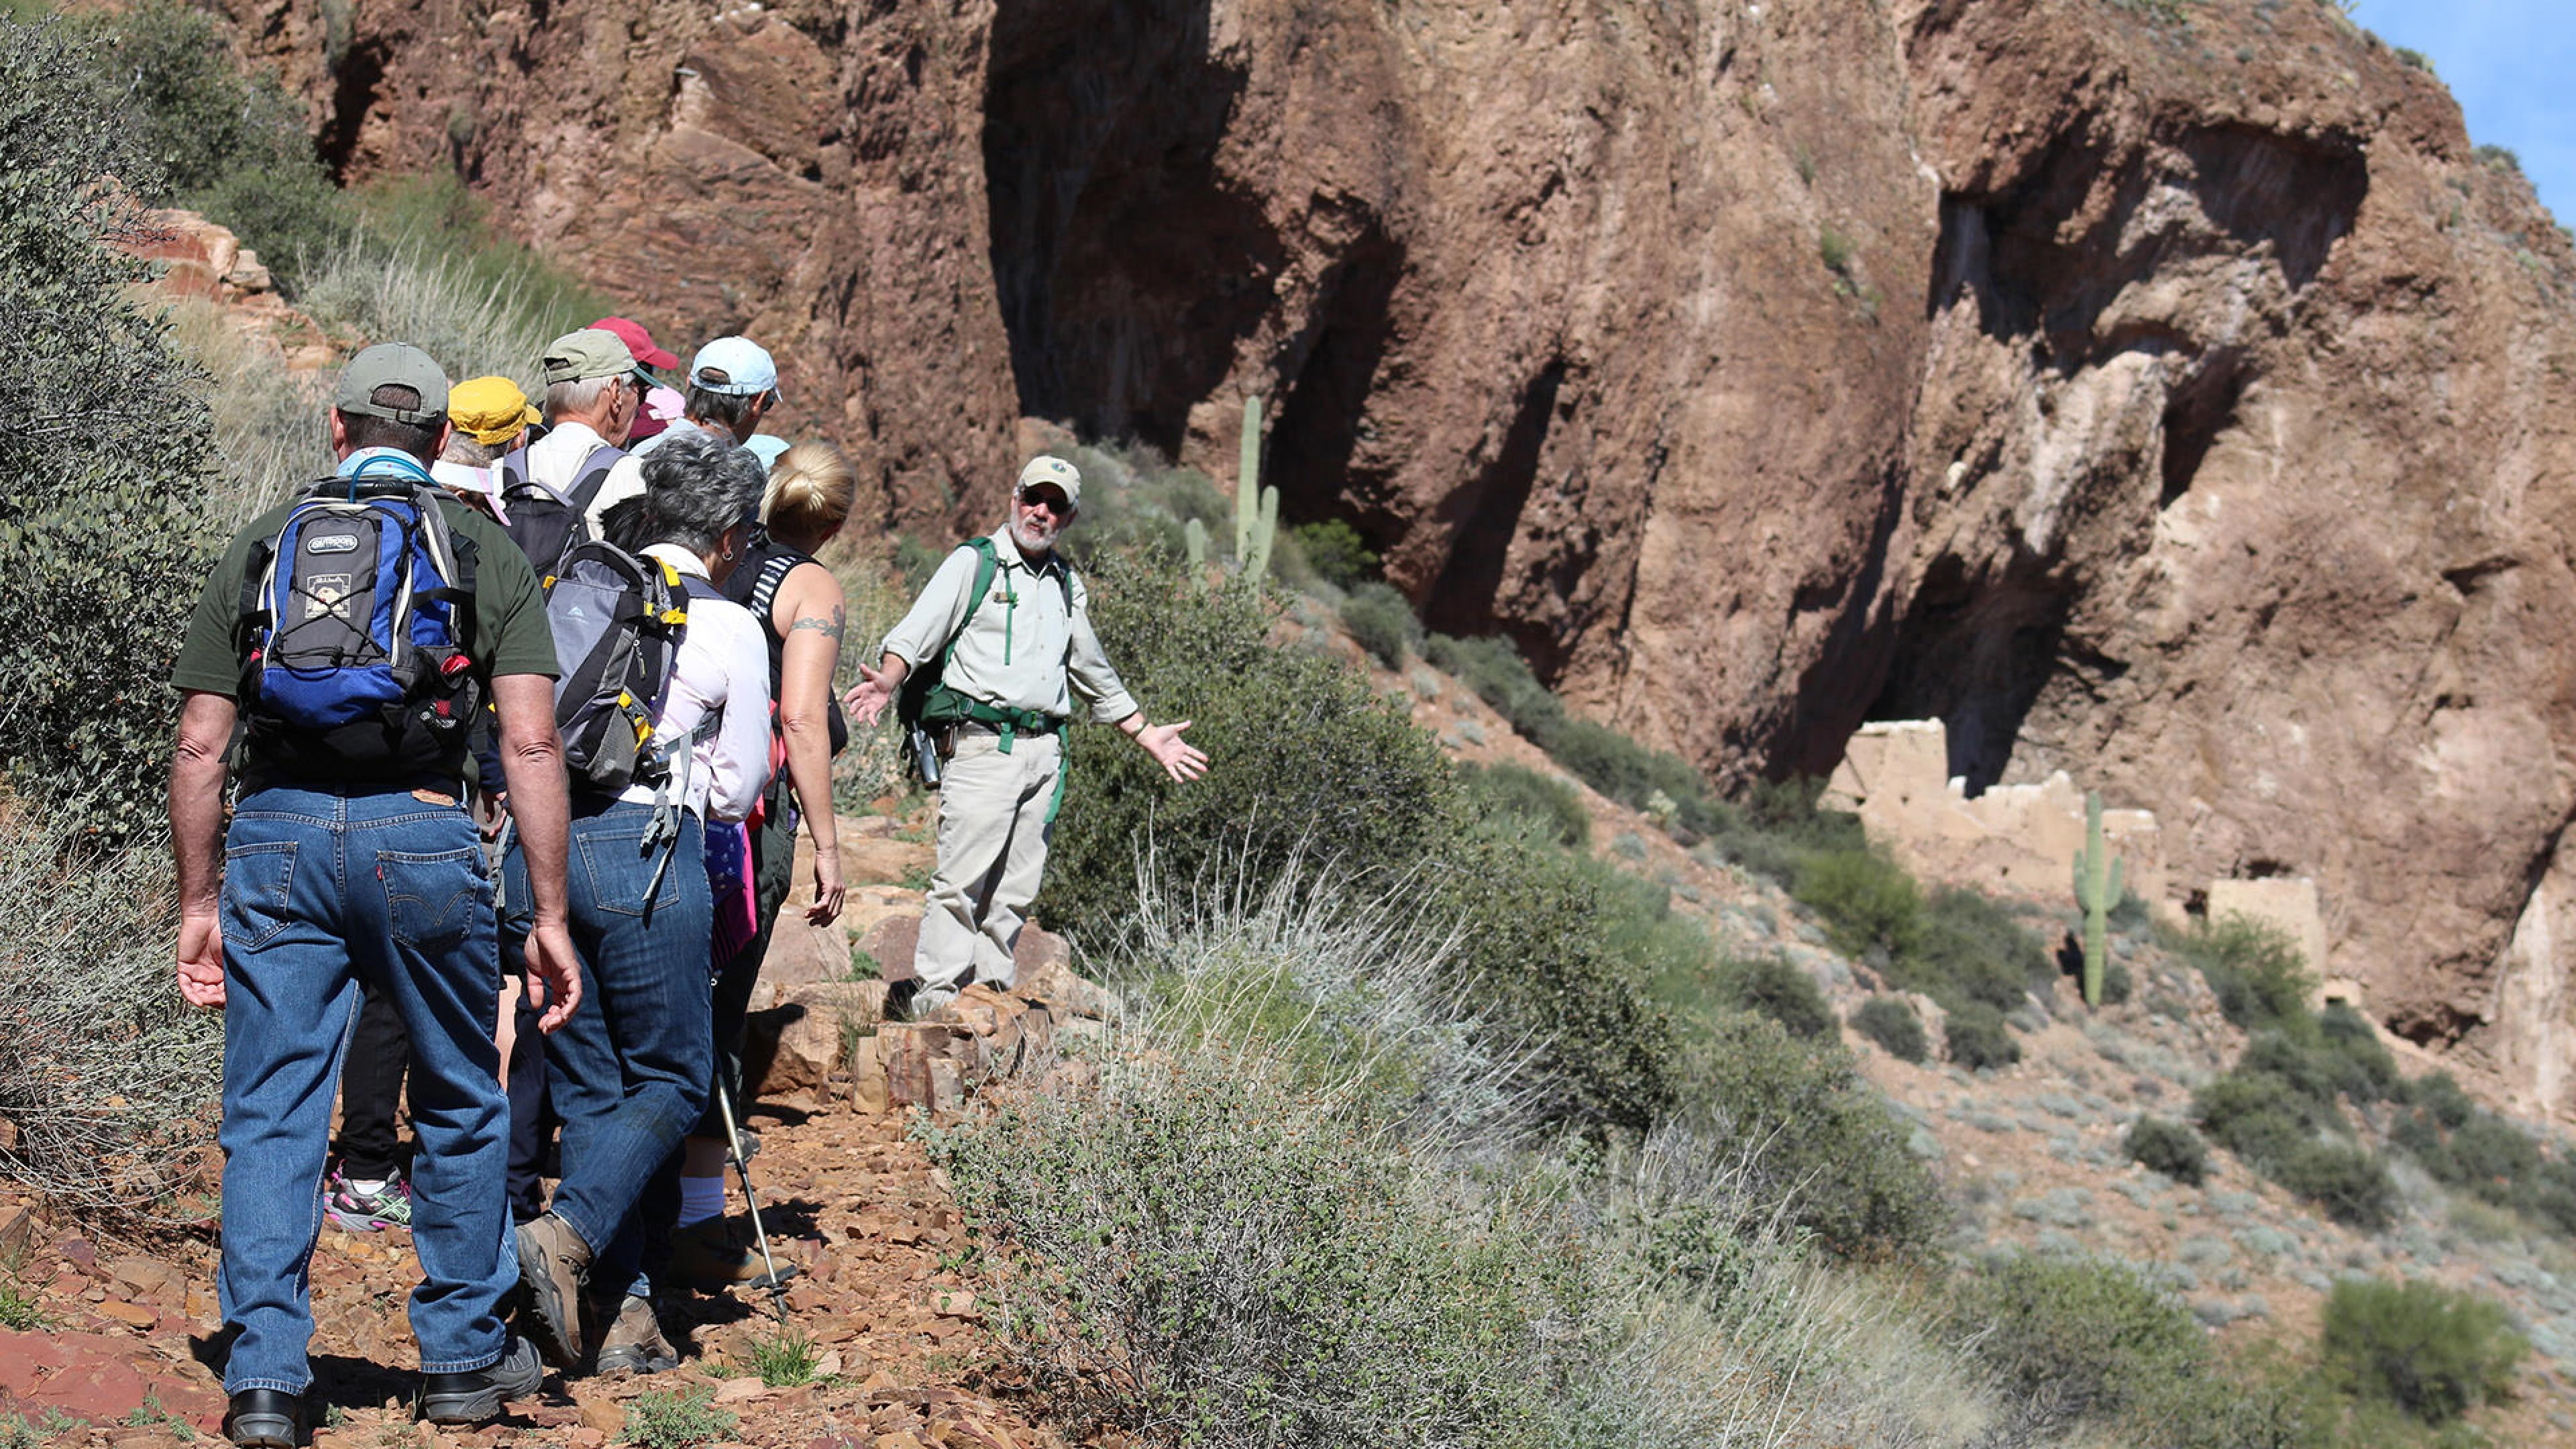 People hiking at Tonto National Monument